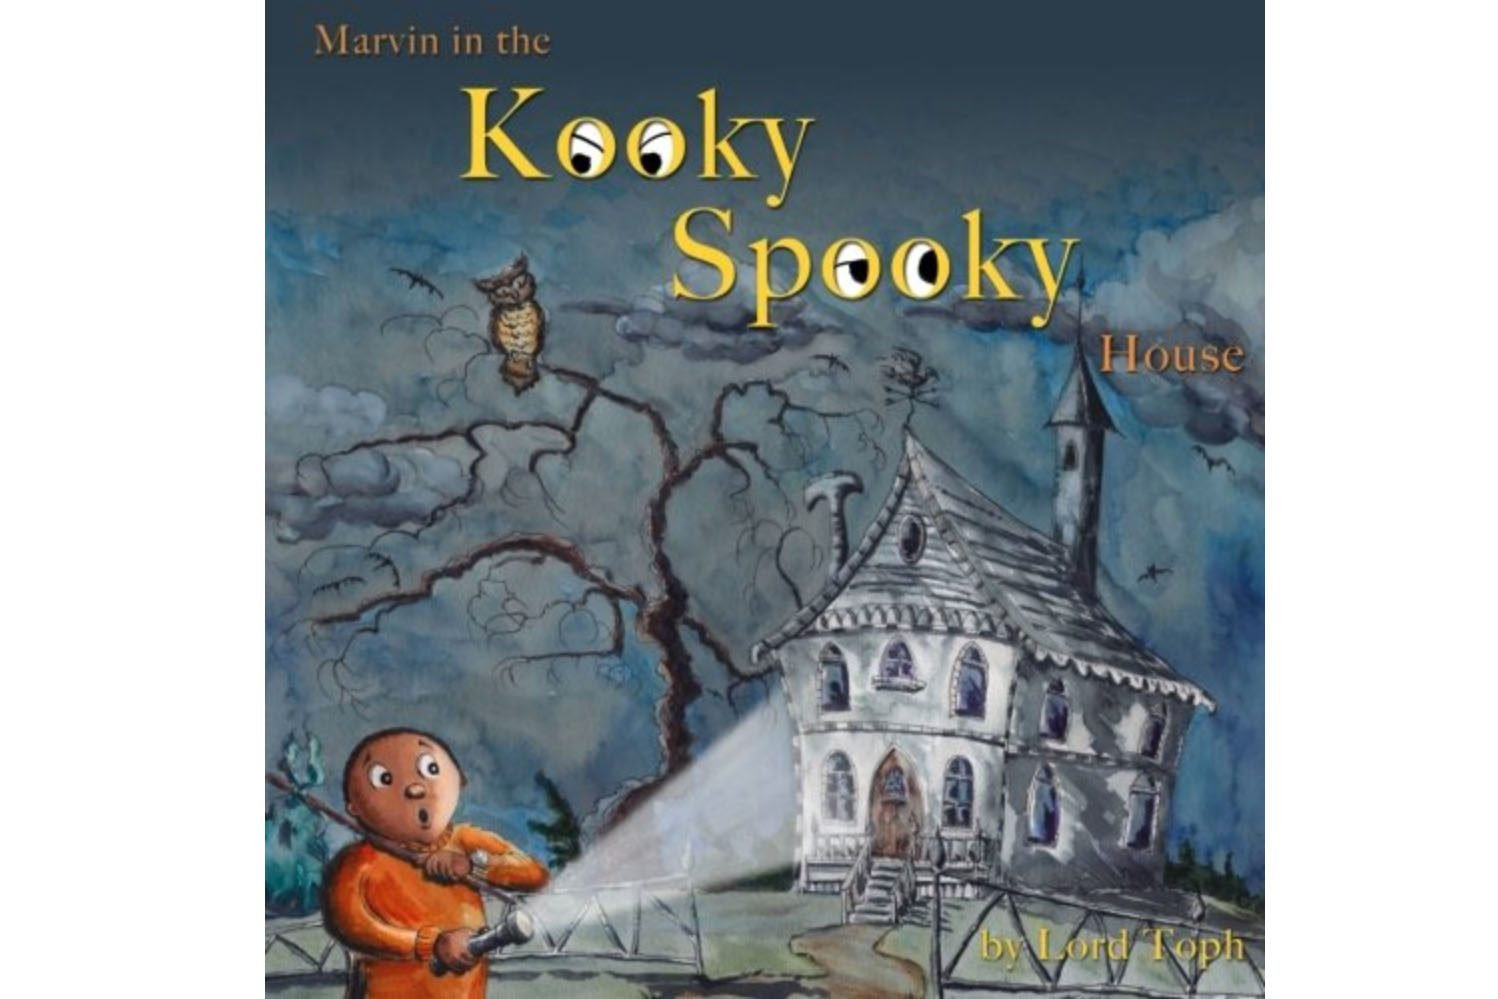 Marvin in the Kooky Spooky House written and illustrated by Lord Toph